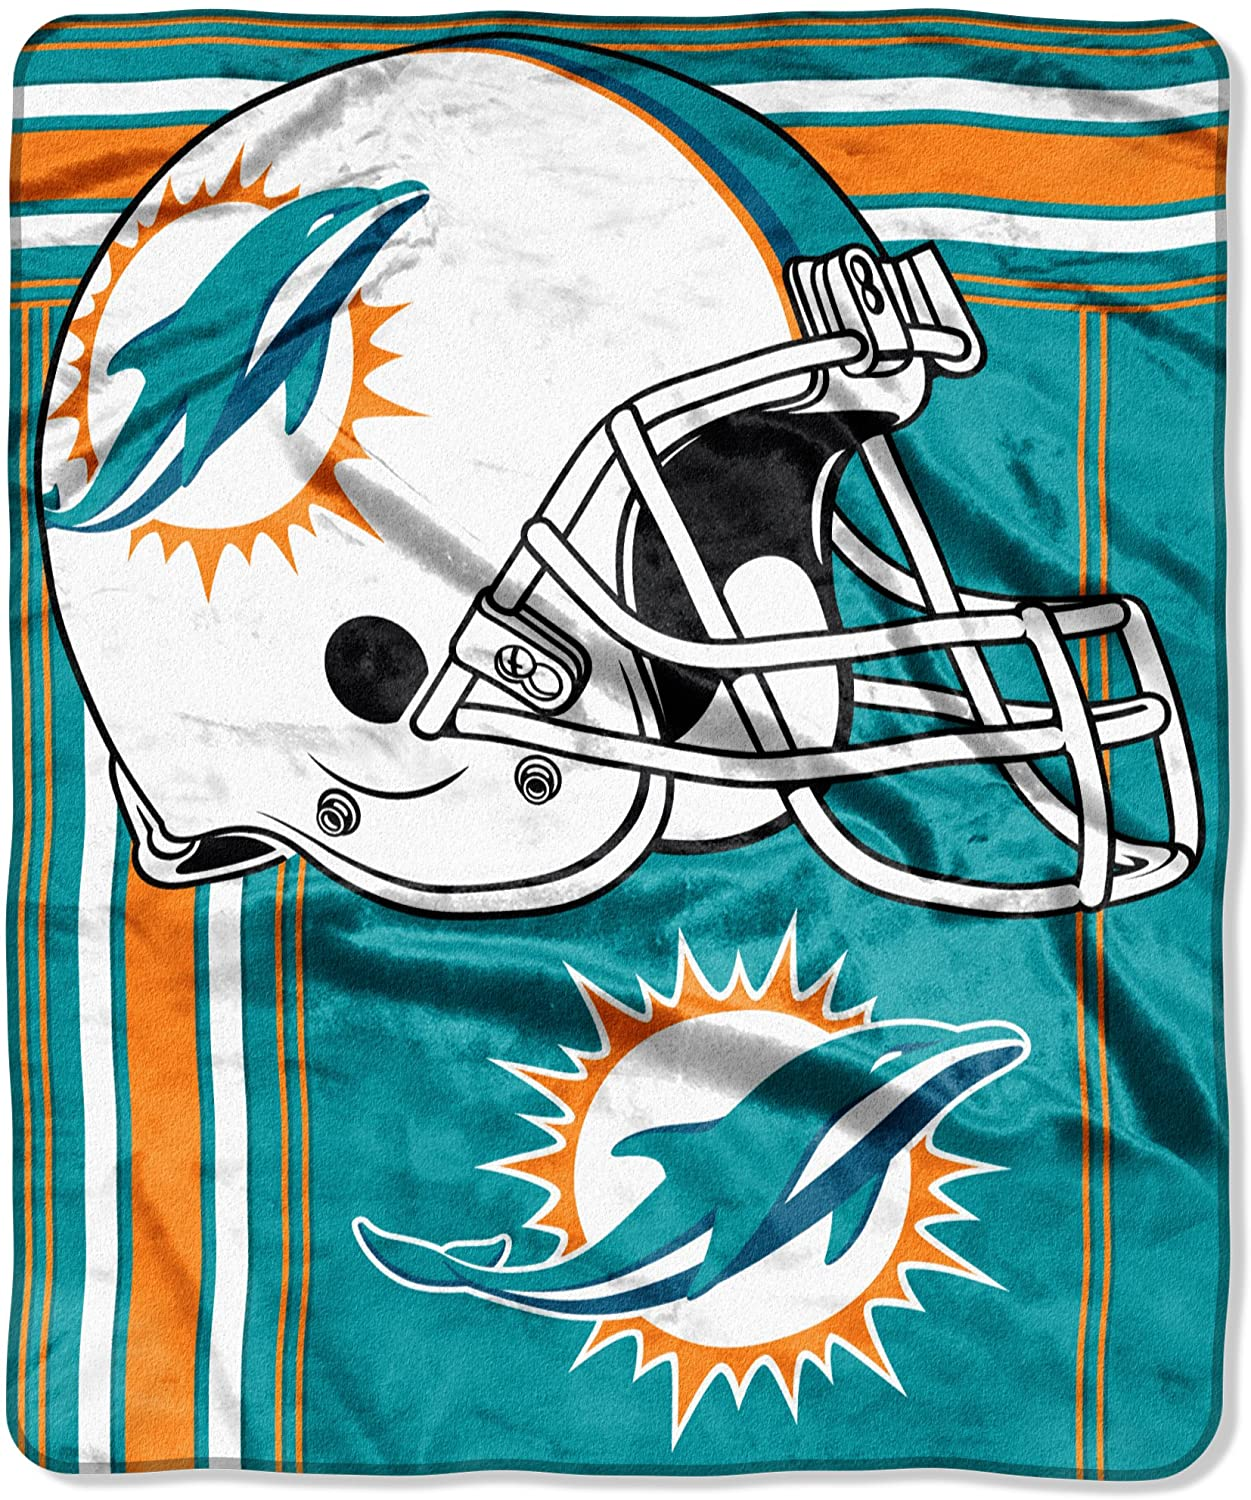 Officially Licensed Nfl Throw Miami Dolphins Fleece Blanket